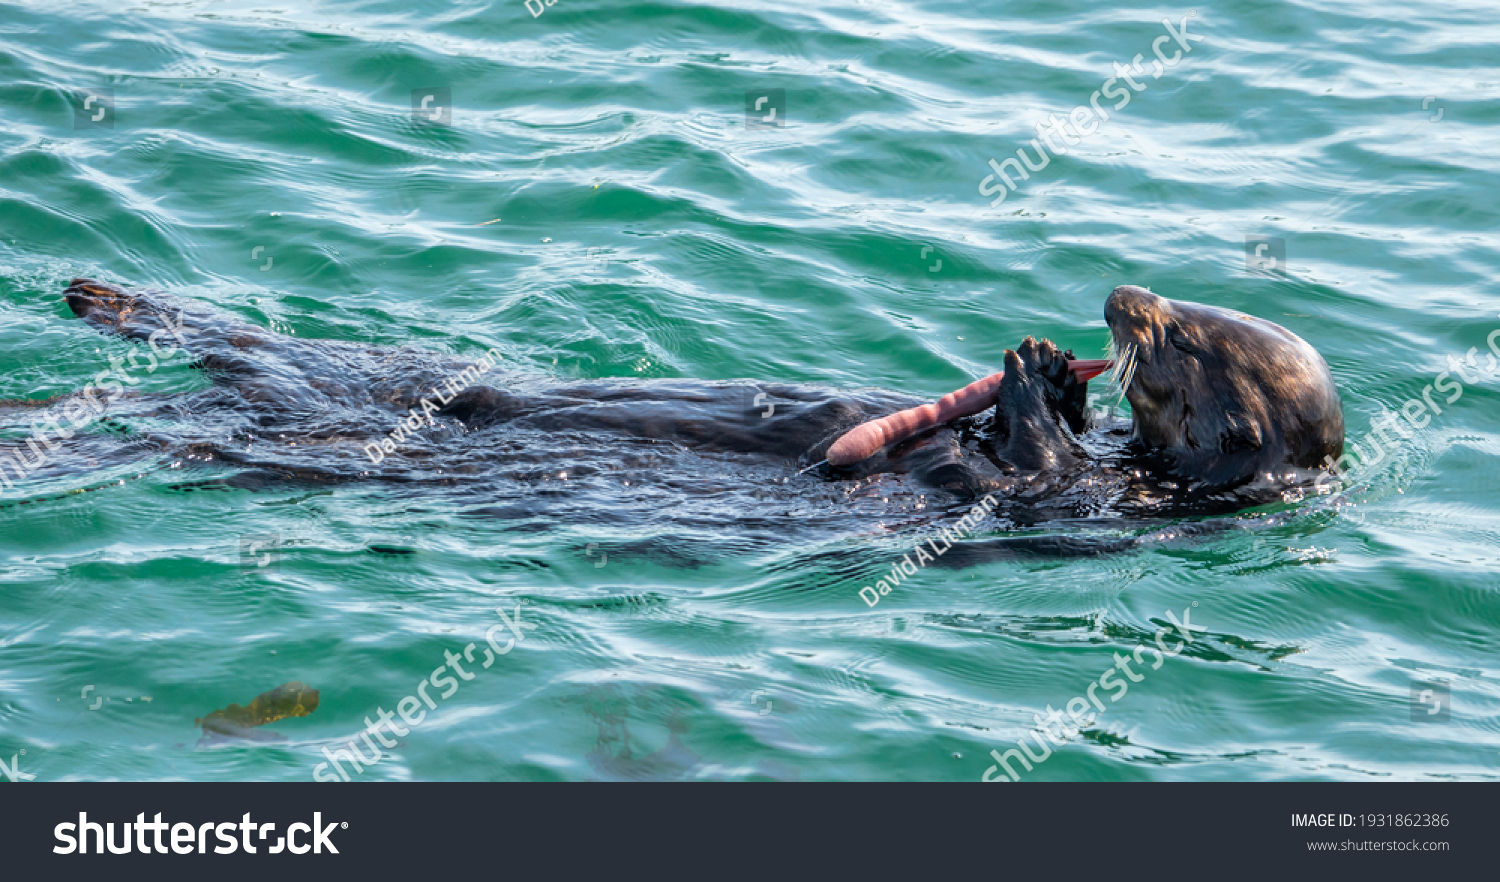 """A Southern Sea Otter (Enhydra lutris) eats a """"Penis Worm"""" (Priapulida) along the Pacific coast of central California in Monterey."""